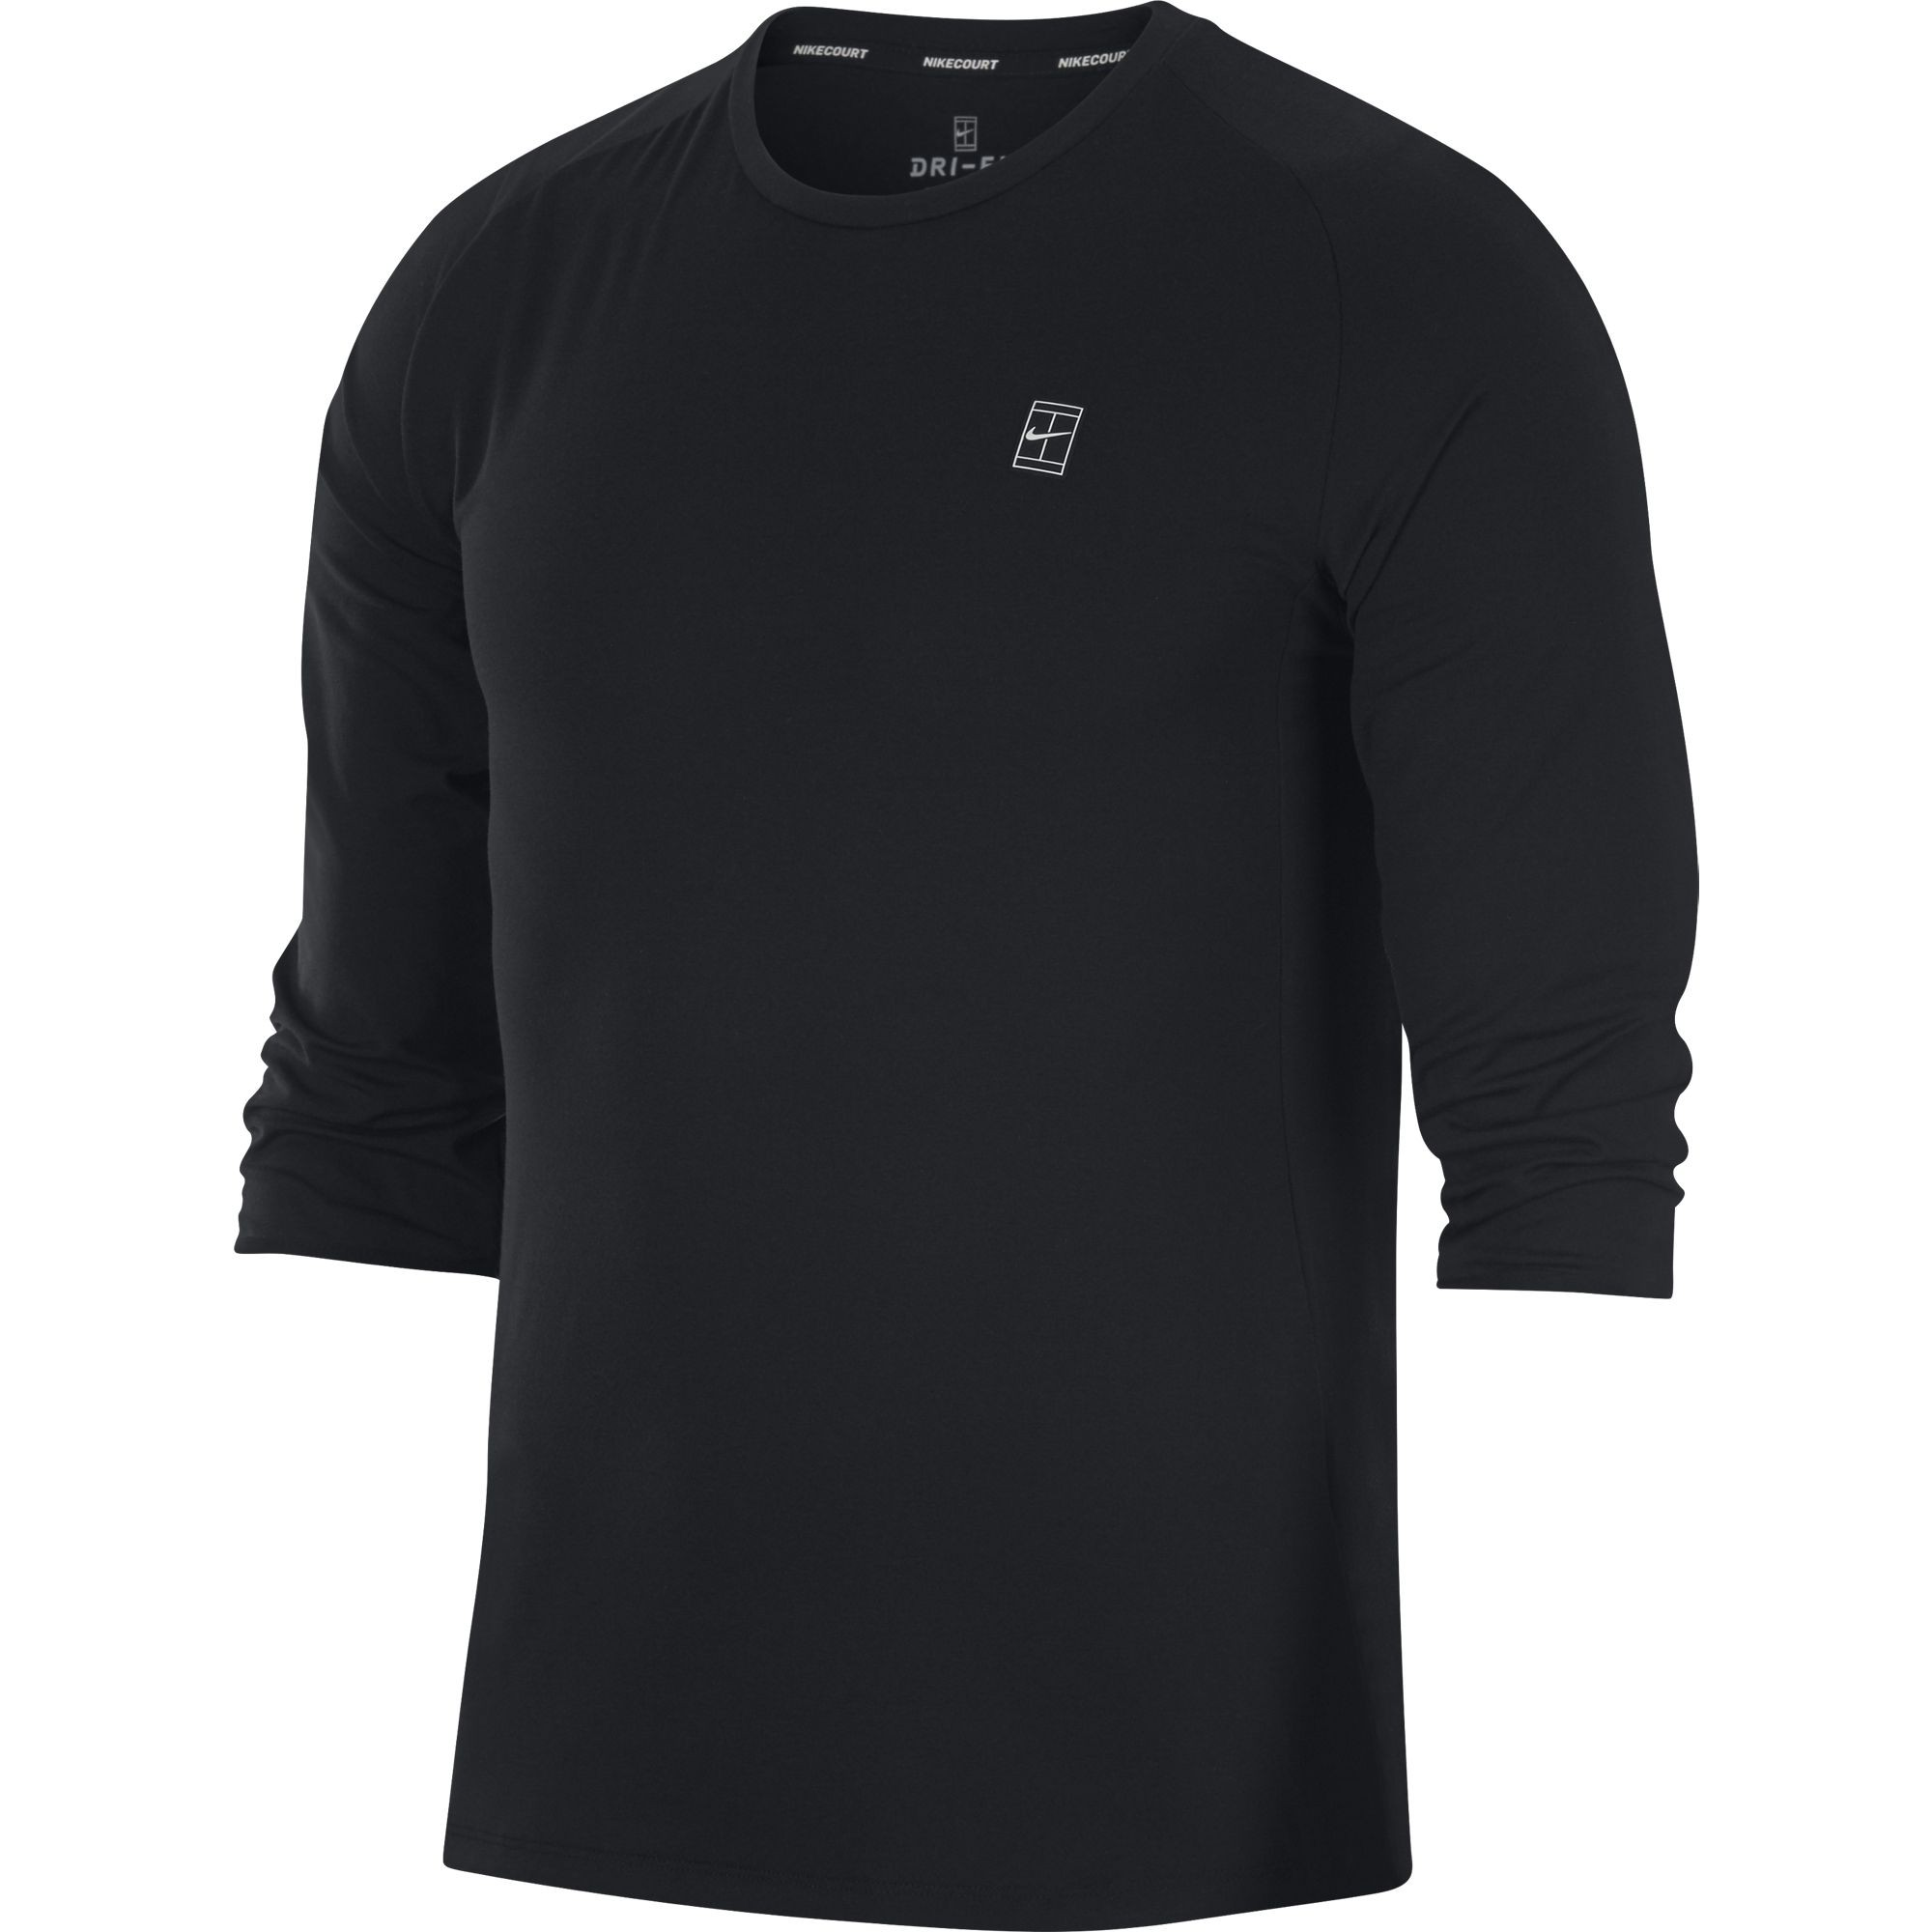 2d1c8eb7abb41 Nike Court Dry Challenger Top 3 4 Homme Ete 2018 - T-shirt De Tennis Homme T -shirt De Tennis Homme